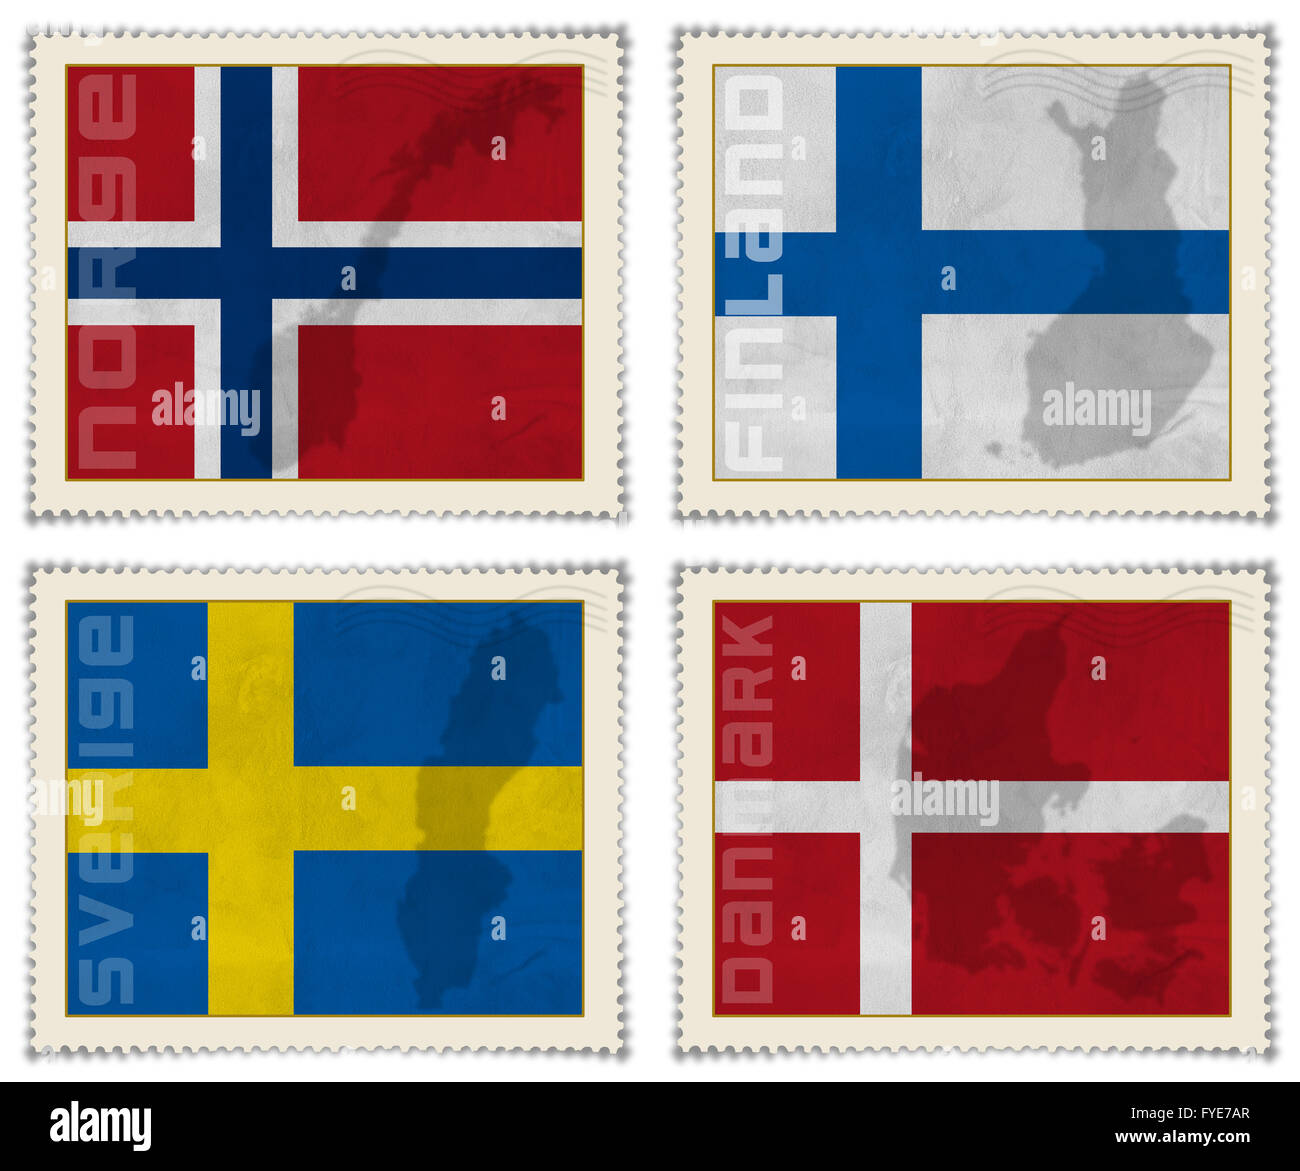 Europe stamps flags - Stock Image